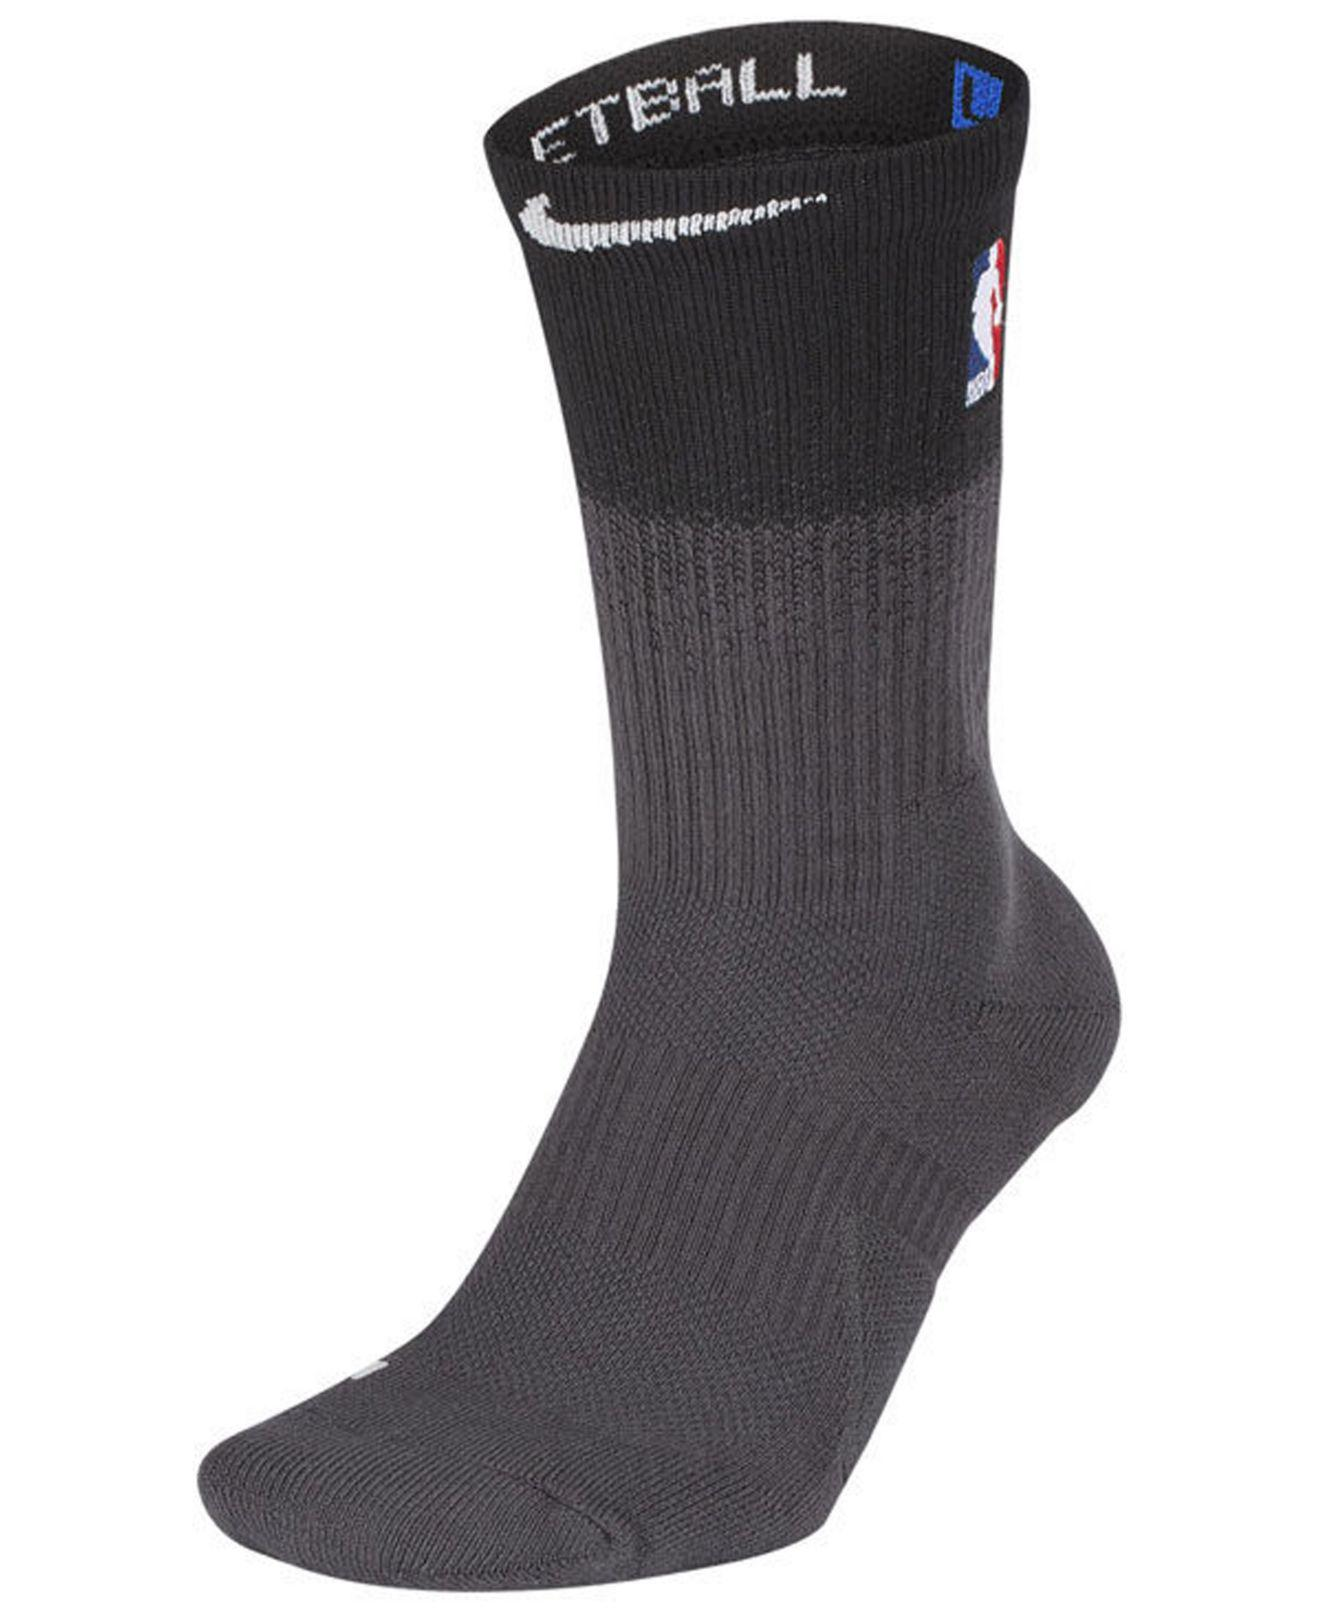 Lyst - Nike Detroit Pistons City Edition Elite Crew Socks in Black ... e3fb15842